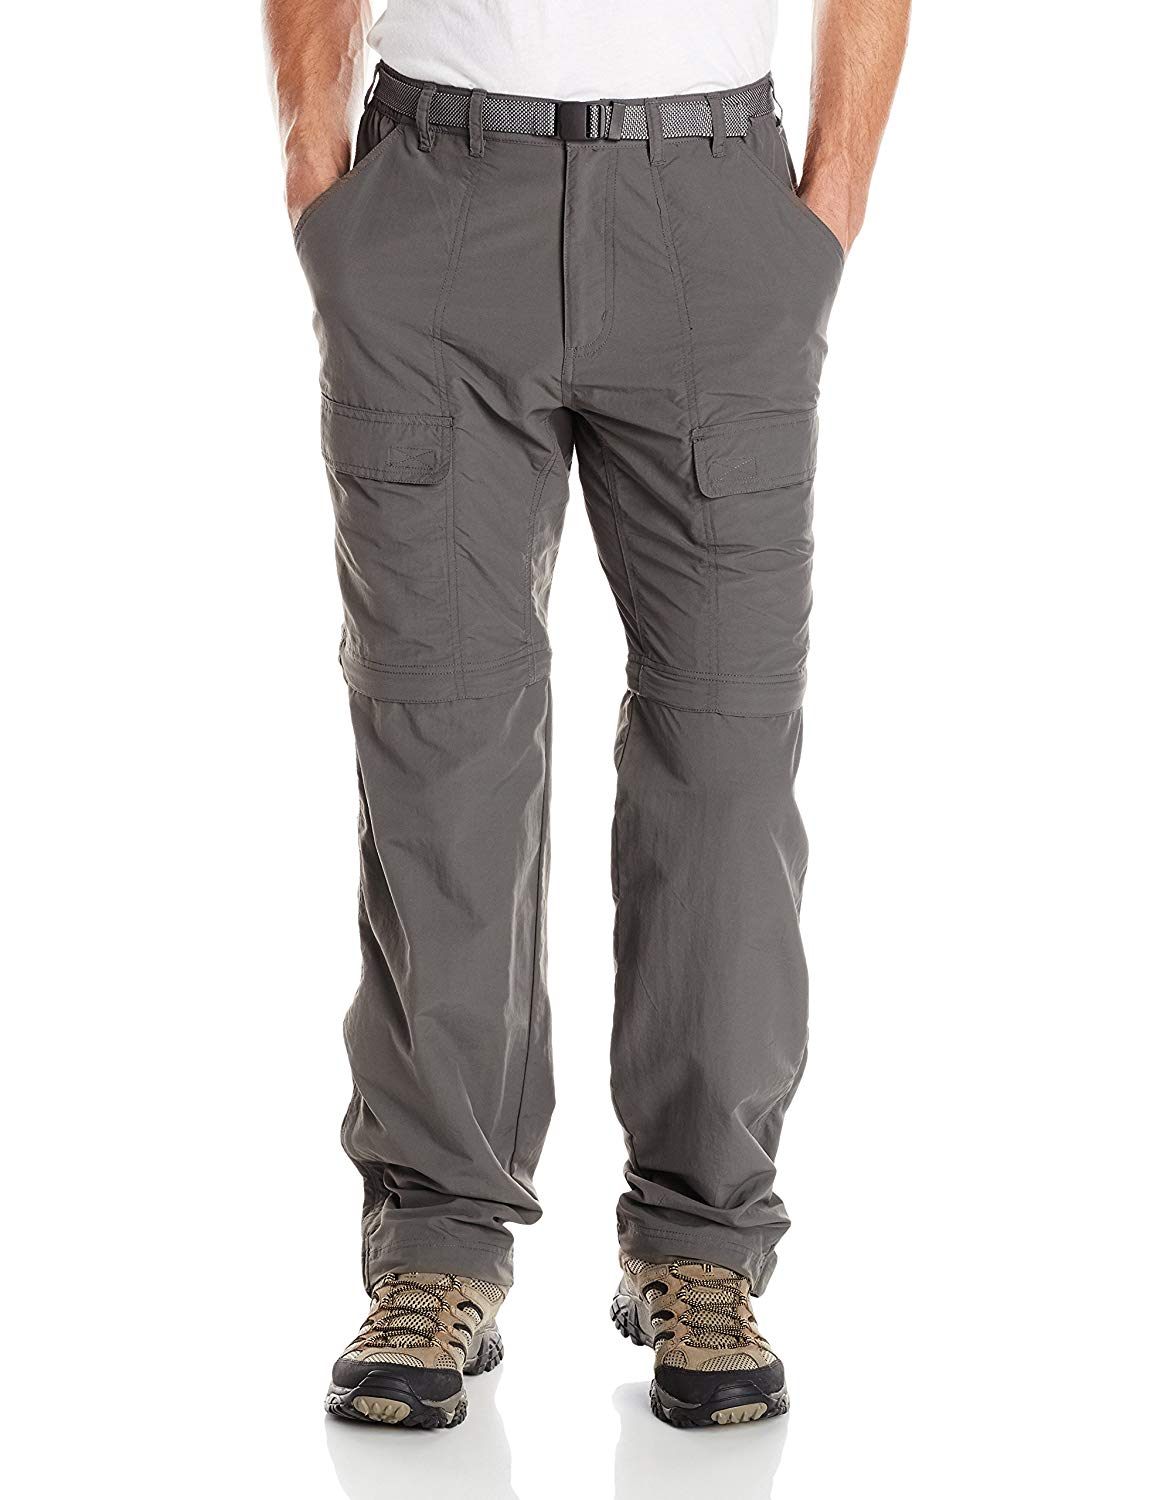 best hiking pants for men - White Sierra Trail